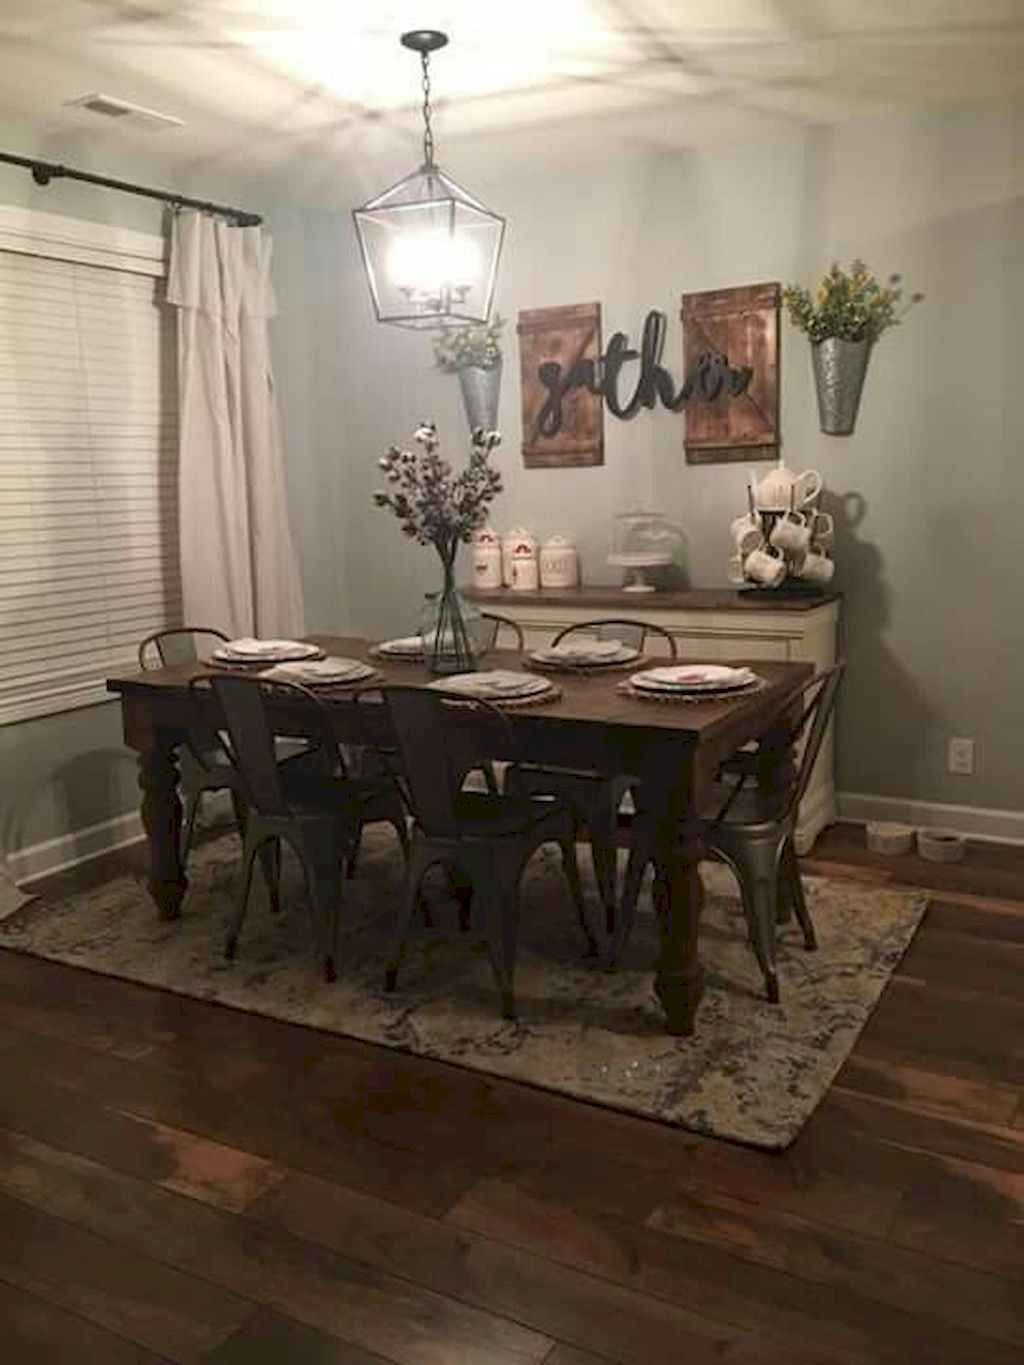 Awesome 45 Gorgeous Farmhouse Dining Room Decor Ideas Source Link Https Decortutor Com 7750 45 Rustic Dining Room Dining Room Walls Dining Room Wall Decor